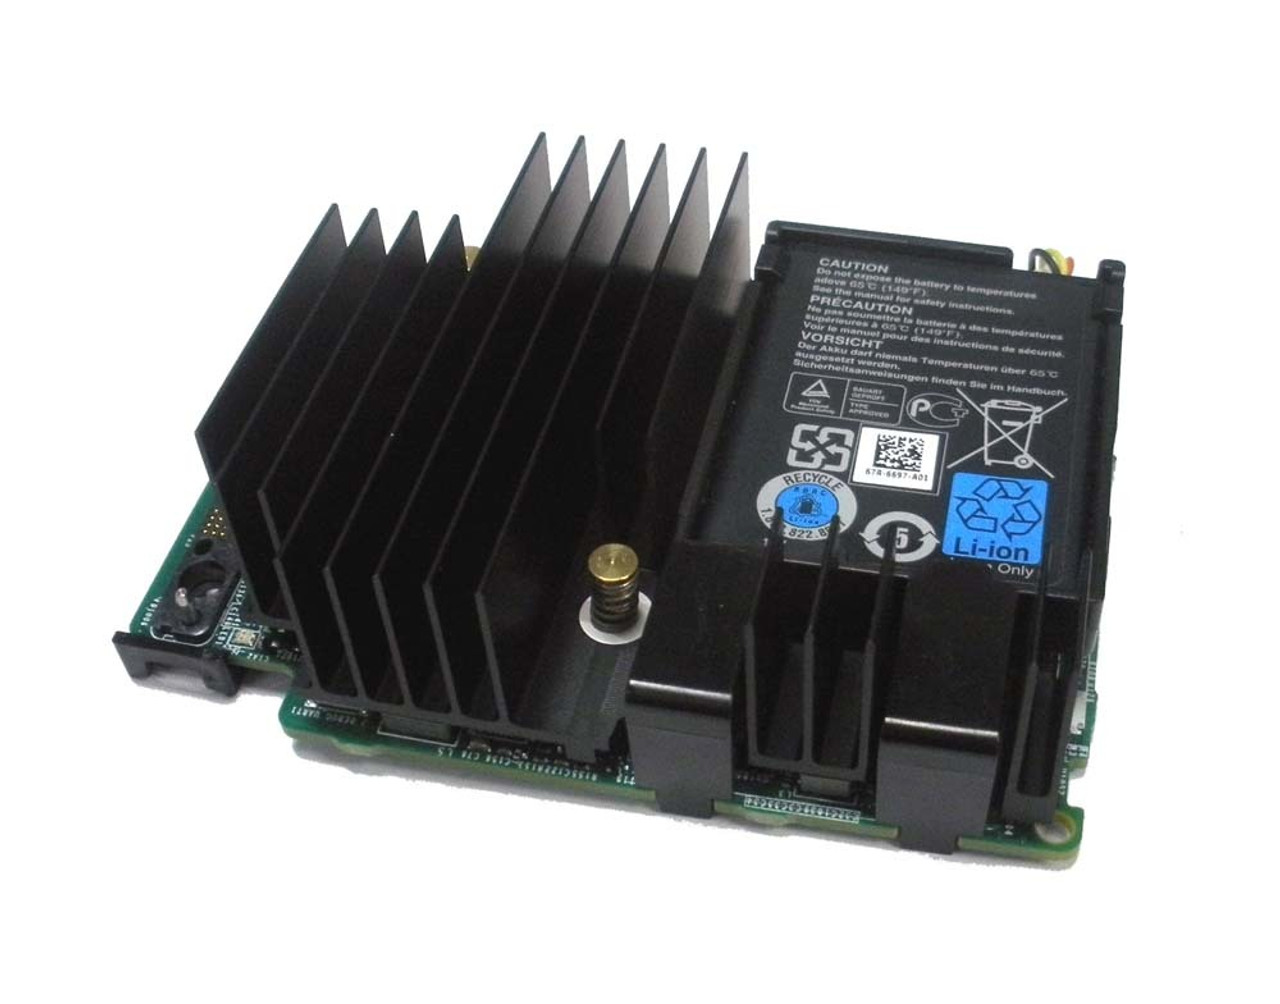 Dell PowerEdge R730 Controllers